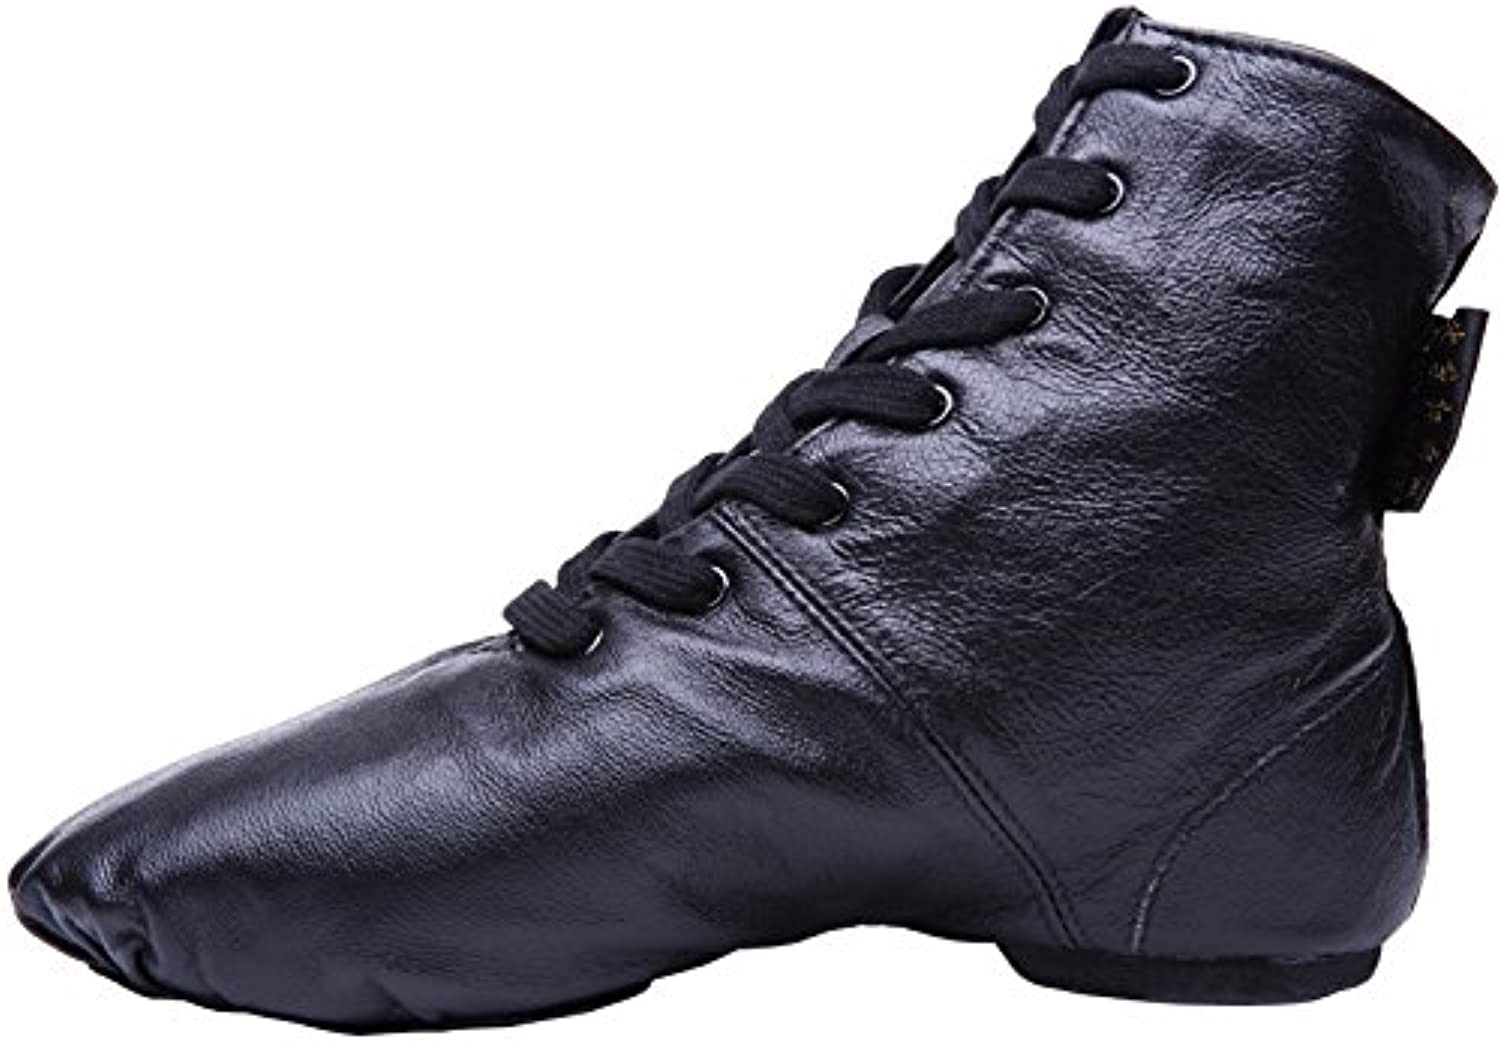 Ruanyi Professional Jazz Dance shoes, Leather Black High-top Jazz Boots for Men Women